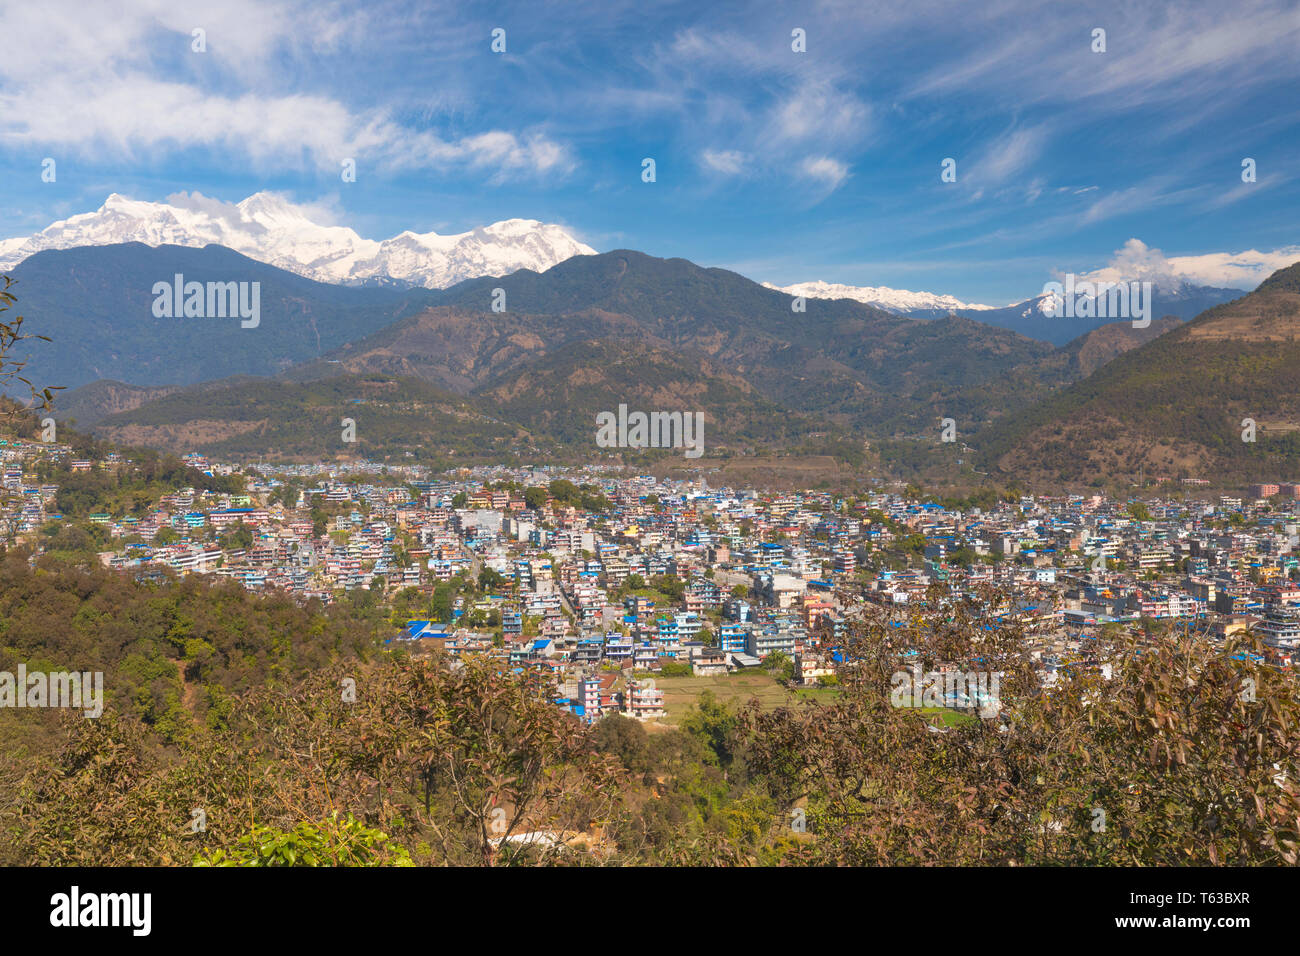 Pokhara Valley,Pokhara is famous Travel destination in Nepal - Stock Image